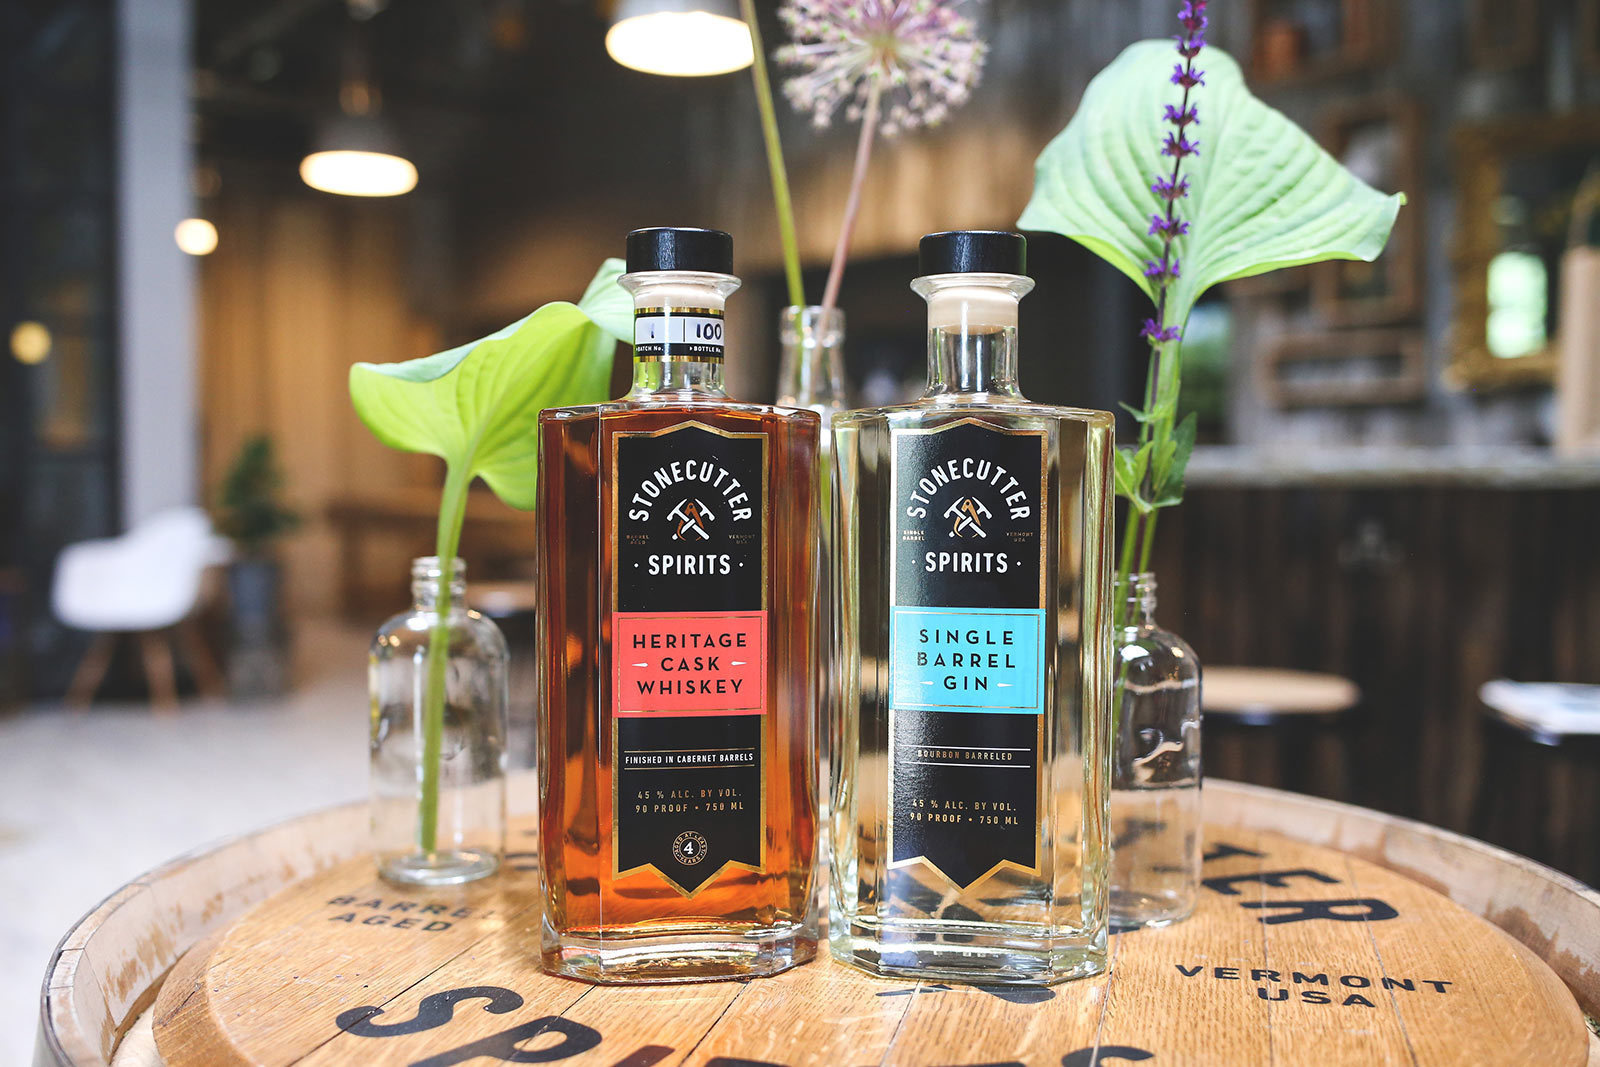 Stonecutter Spirits Whiskey and Gin bottles in Vermont